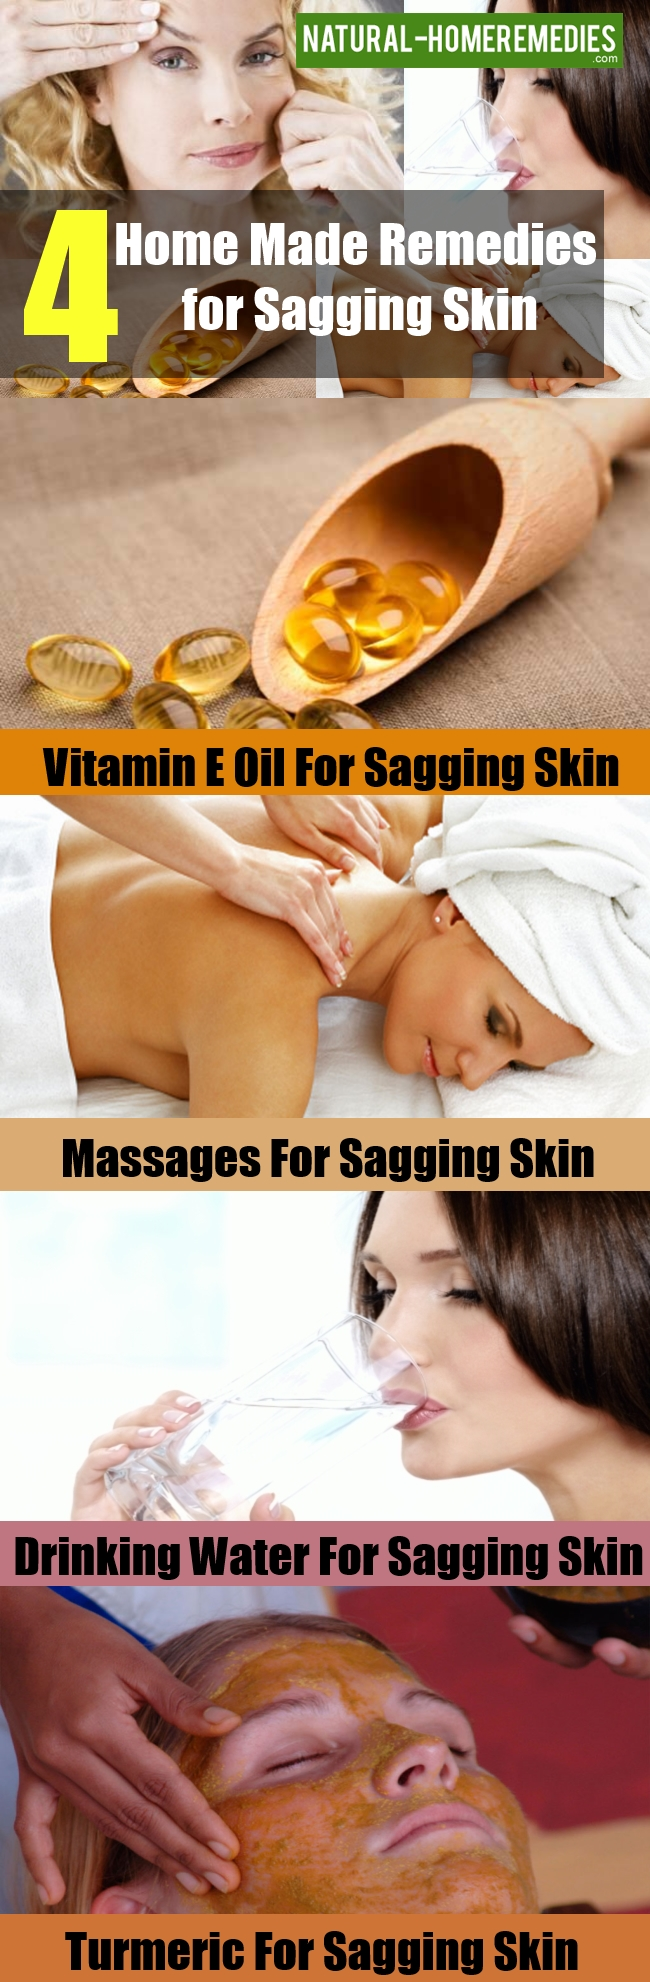 Home Made Remedies for Sagging Skin